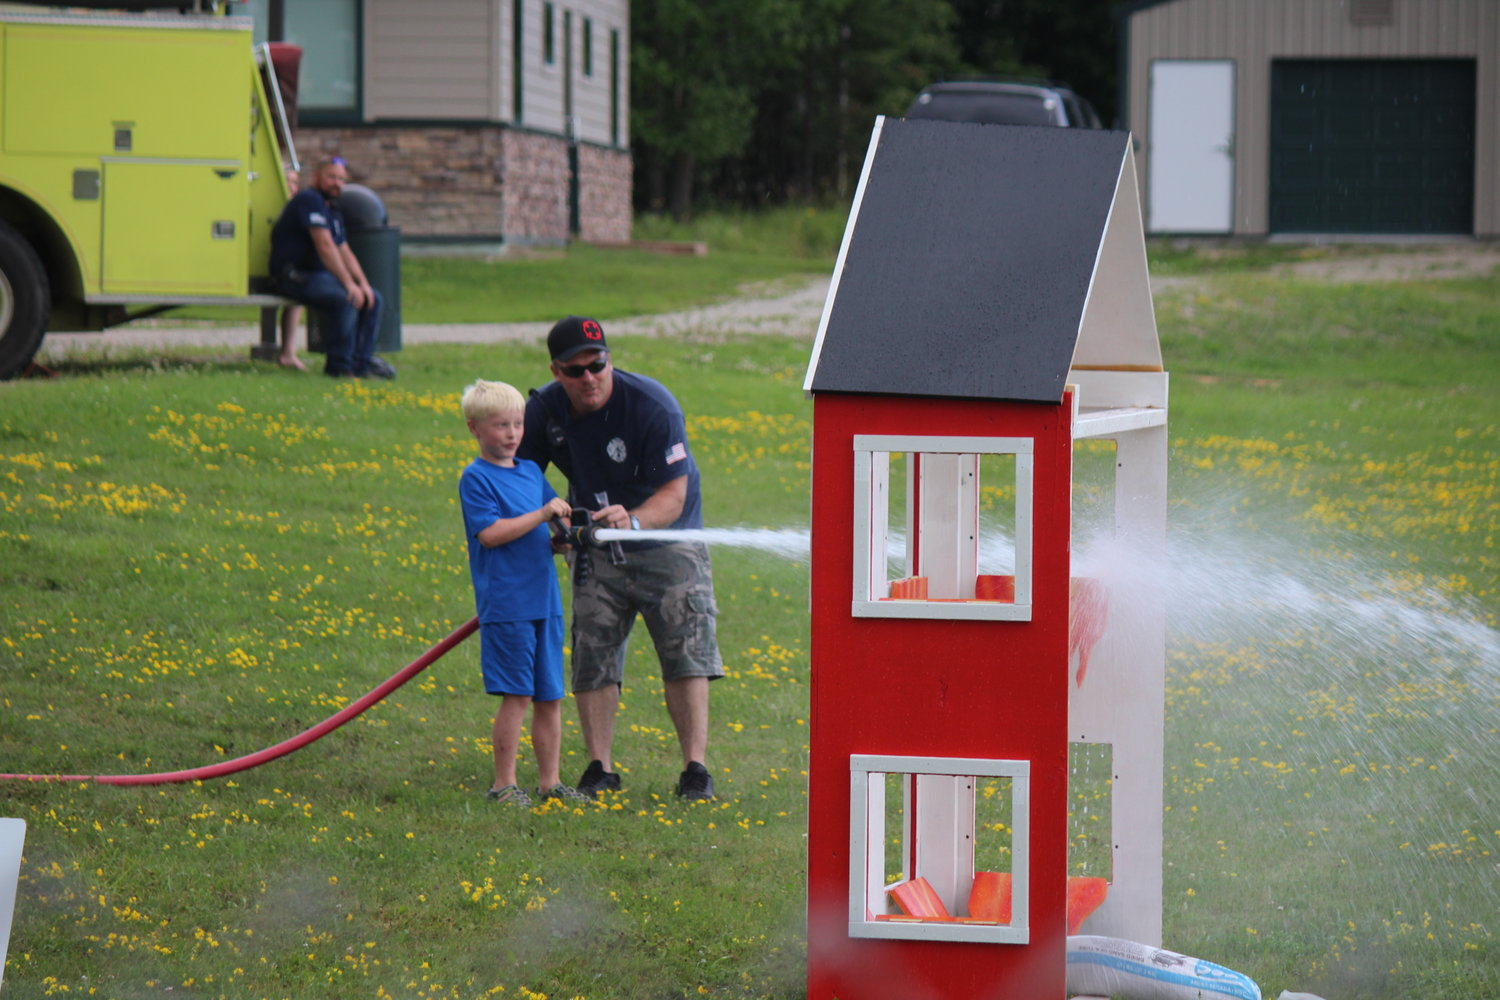 Cook Volunteer Firefighter Jon Rothluetner helps Grant Bixby Meehan, 8, hoist a hefty hose at the mock firehouse.